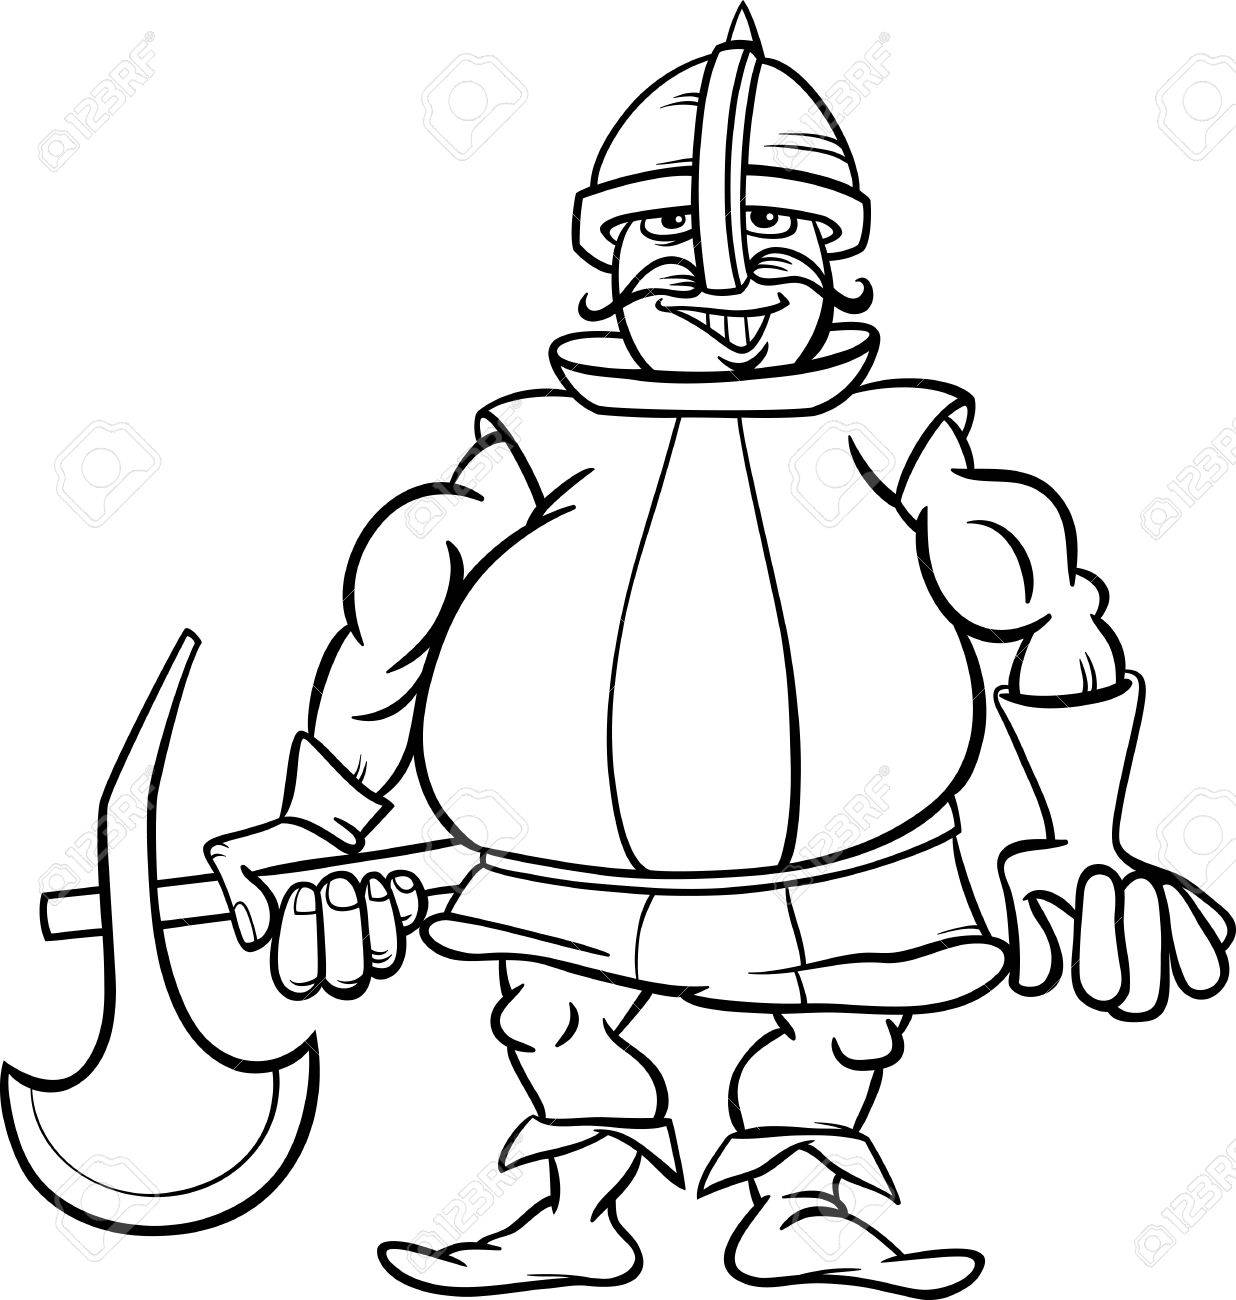 Black And White Cartoon Illustration Of Funny Knight With Axe ...